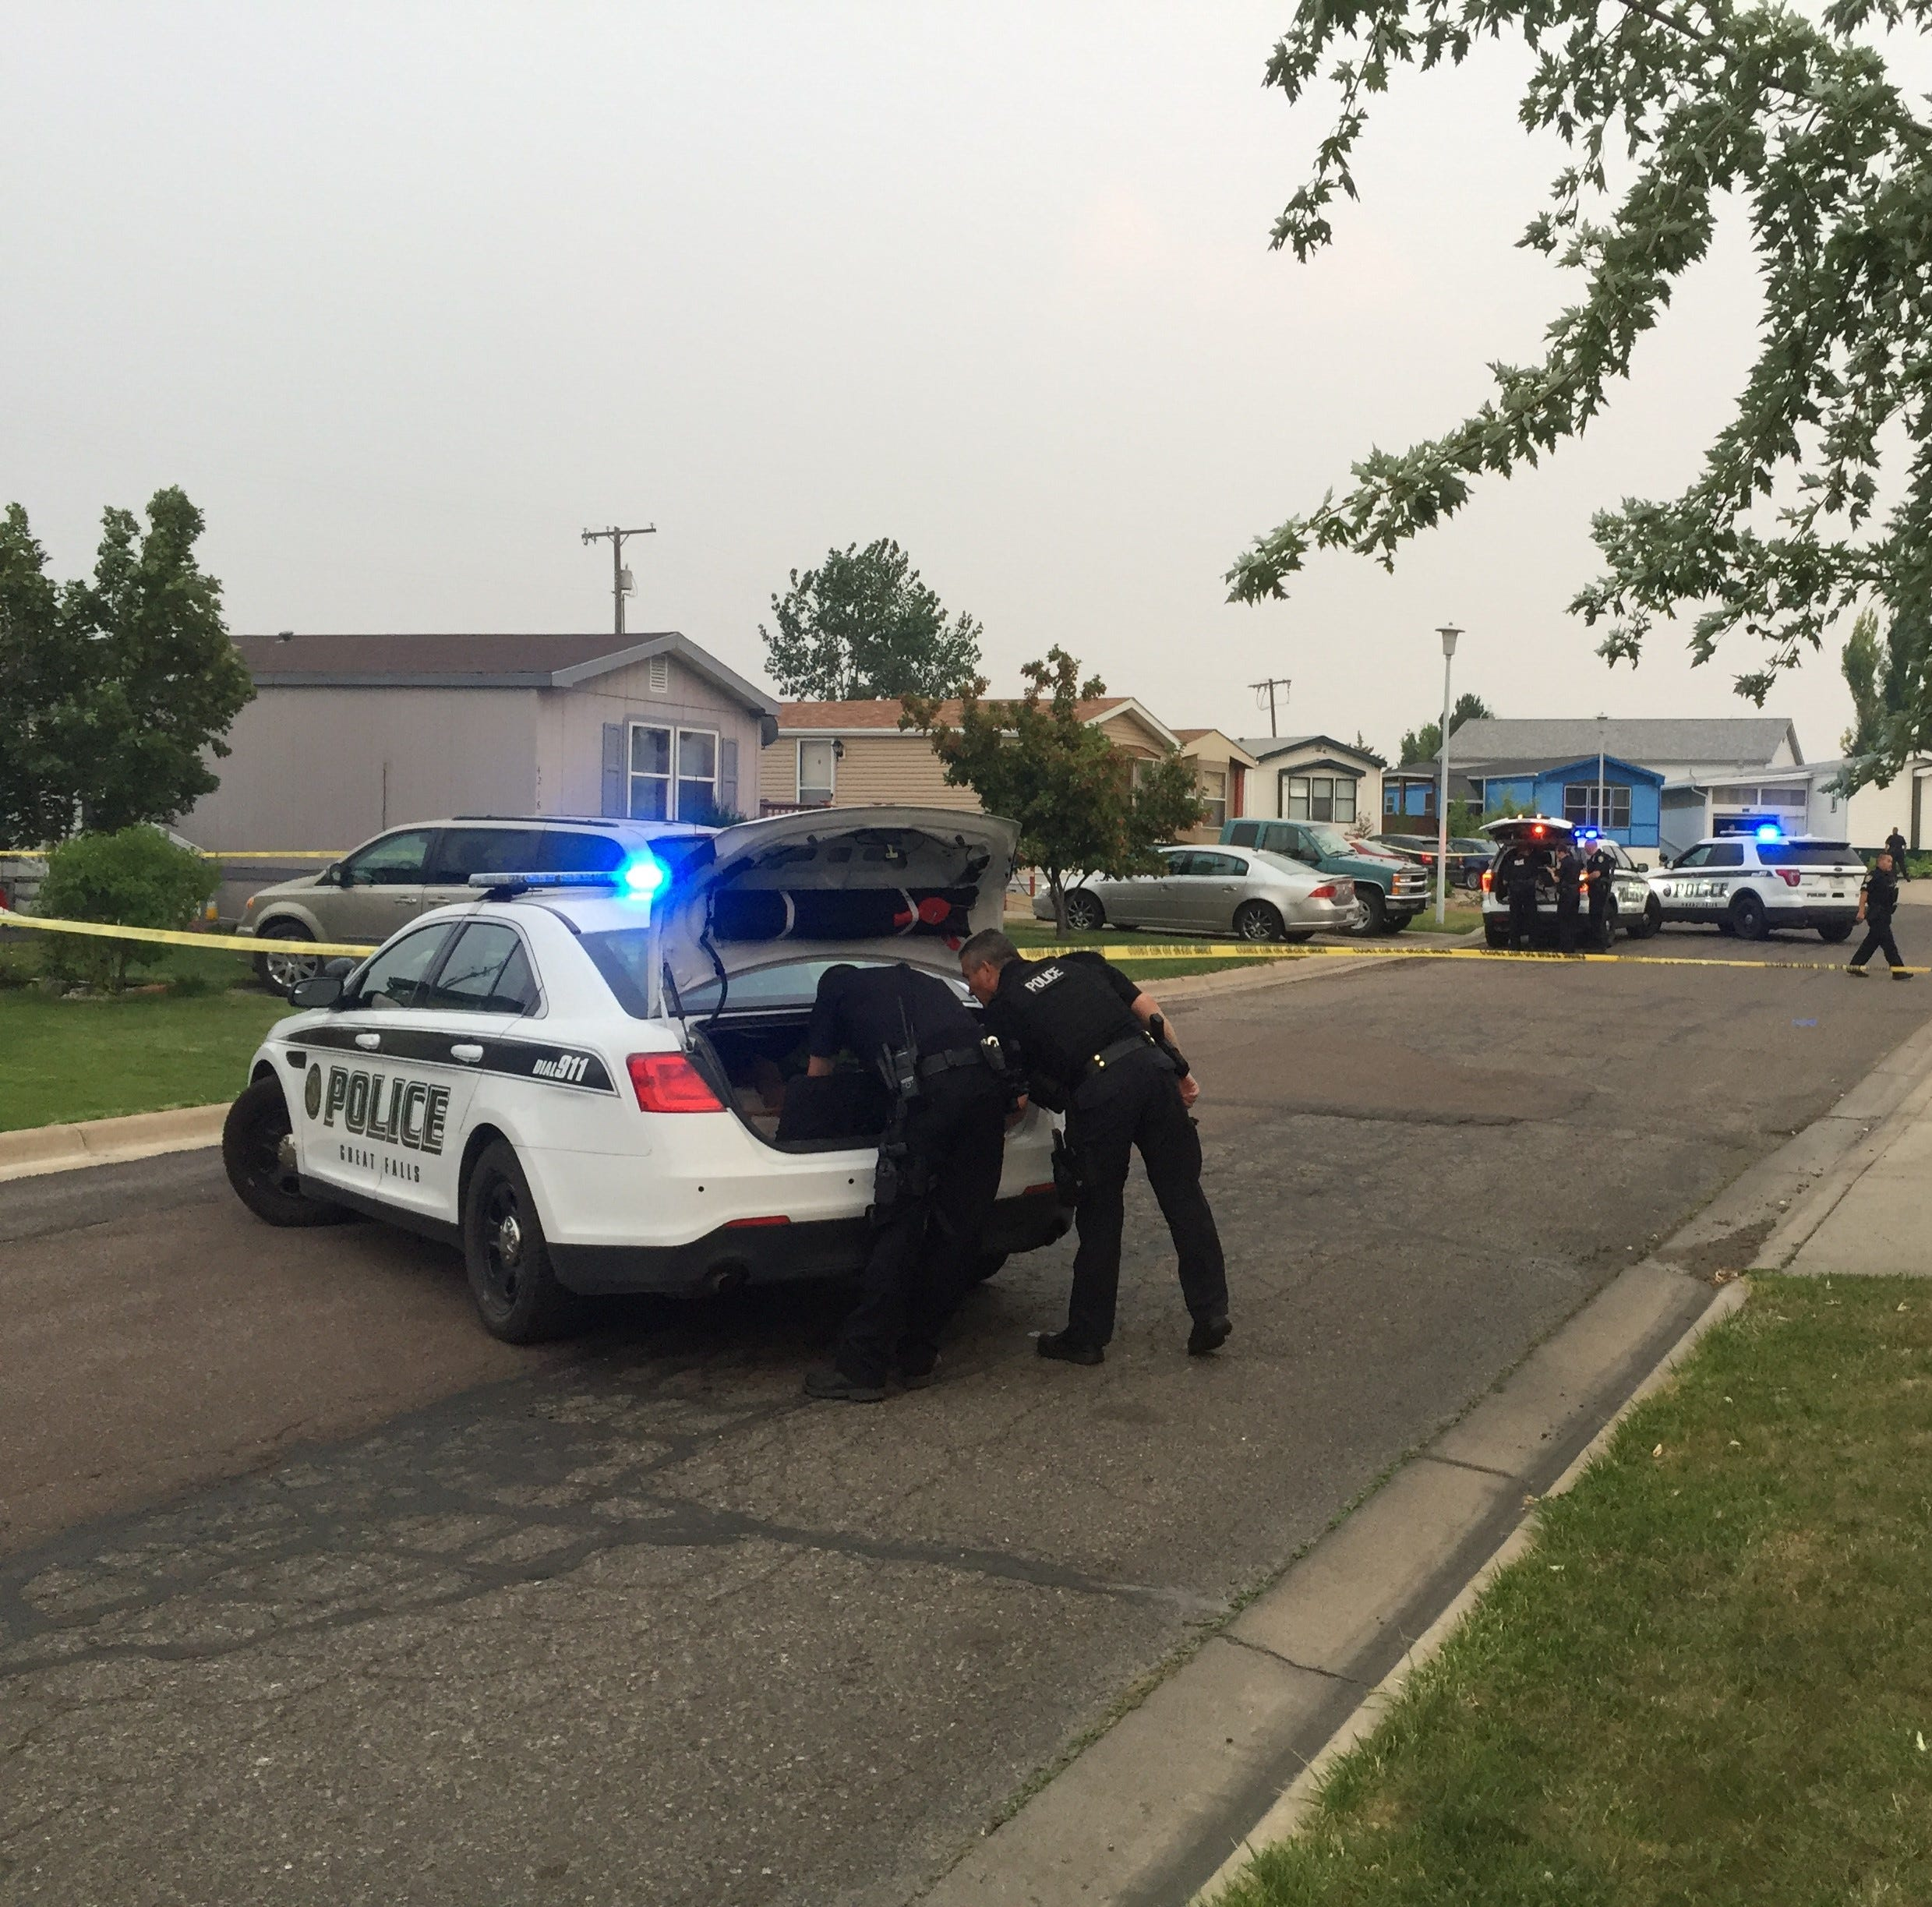 UPDATE: Man dead after Great Falls police involved shooting at mobile home park